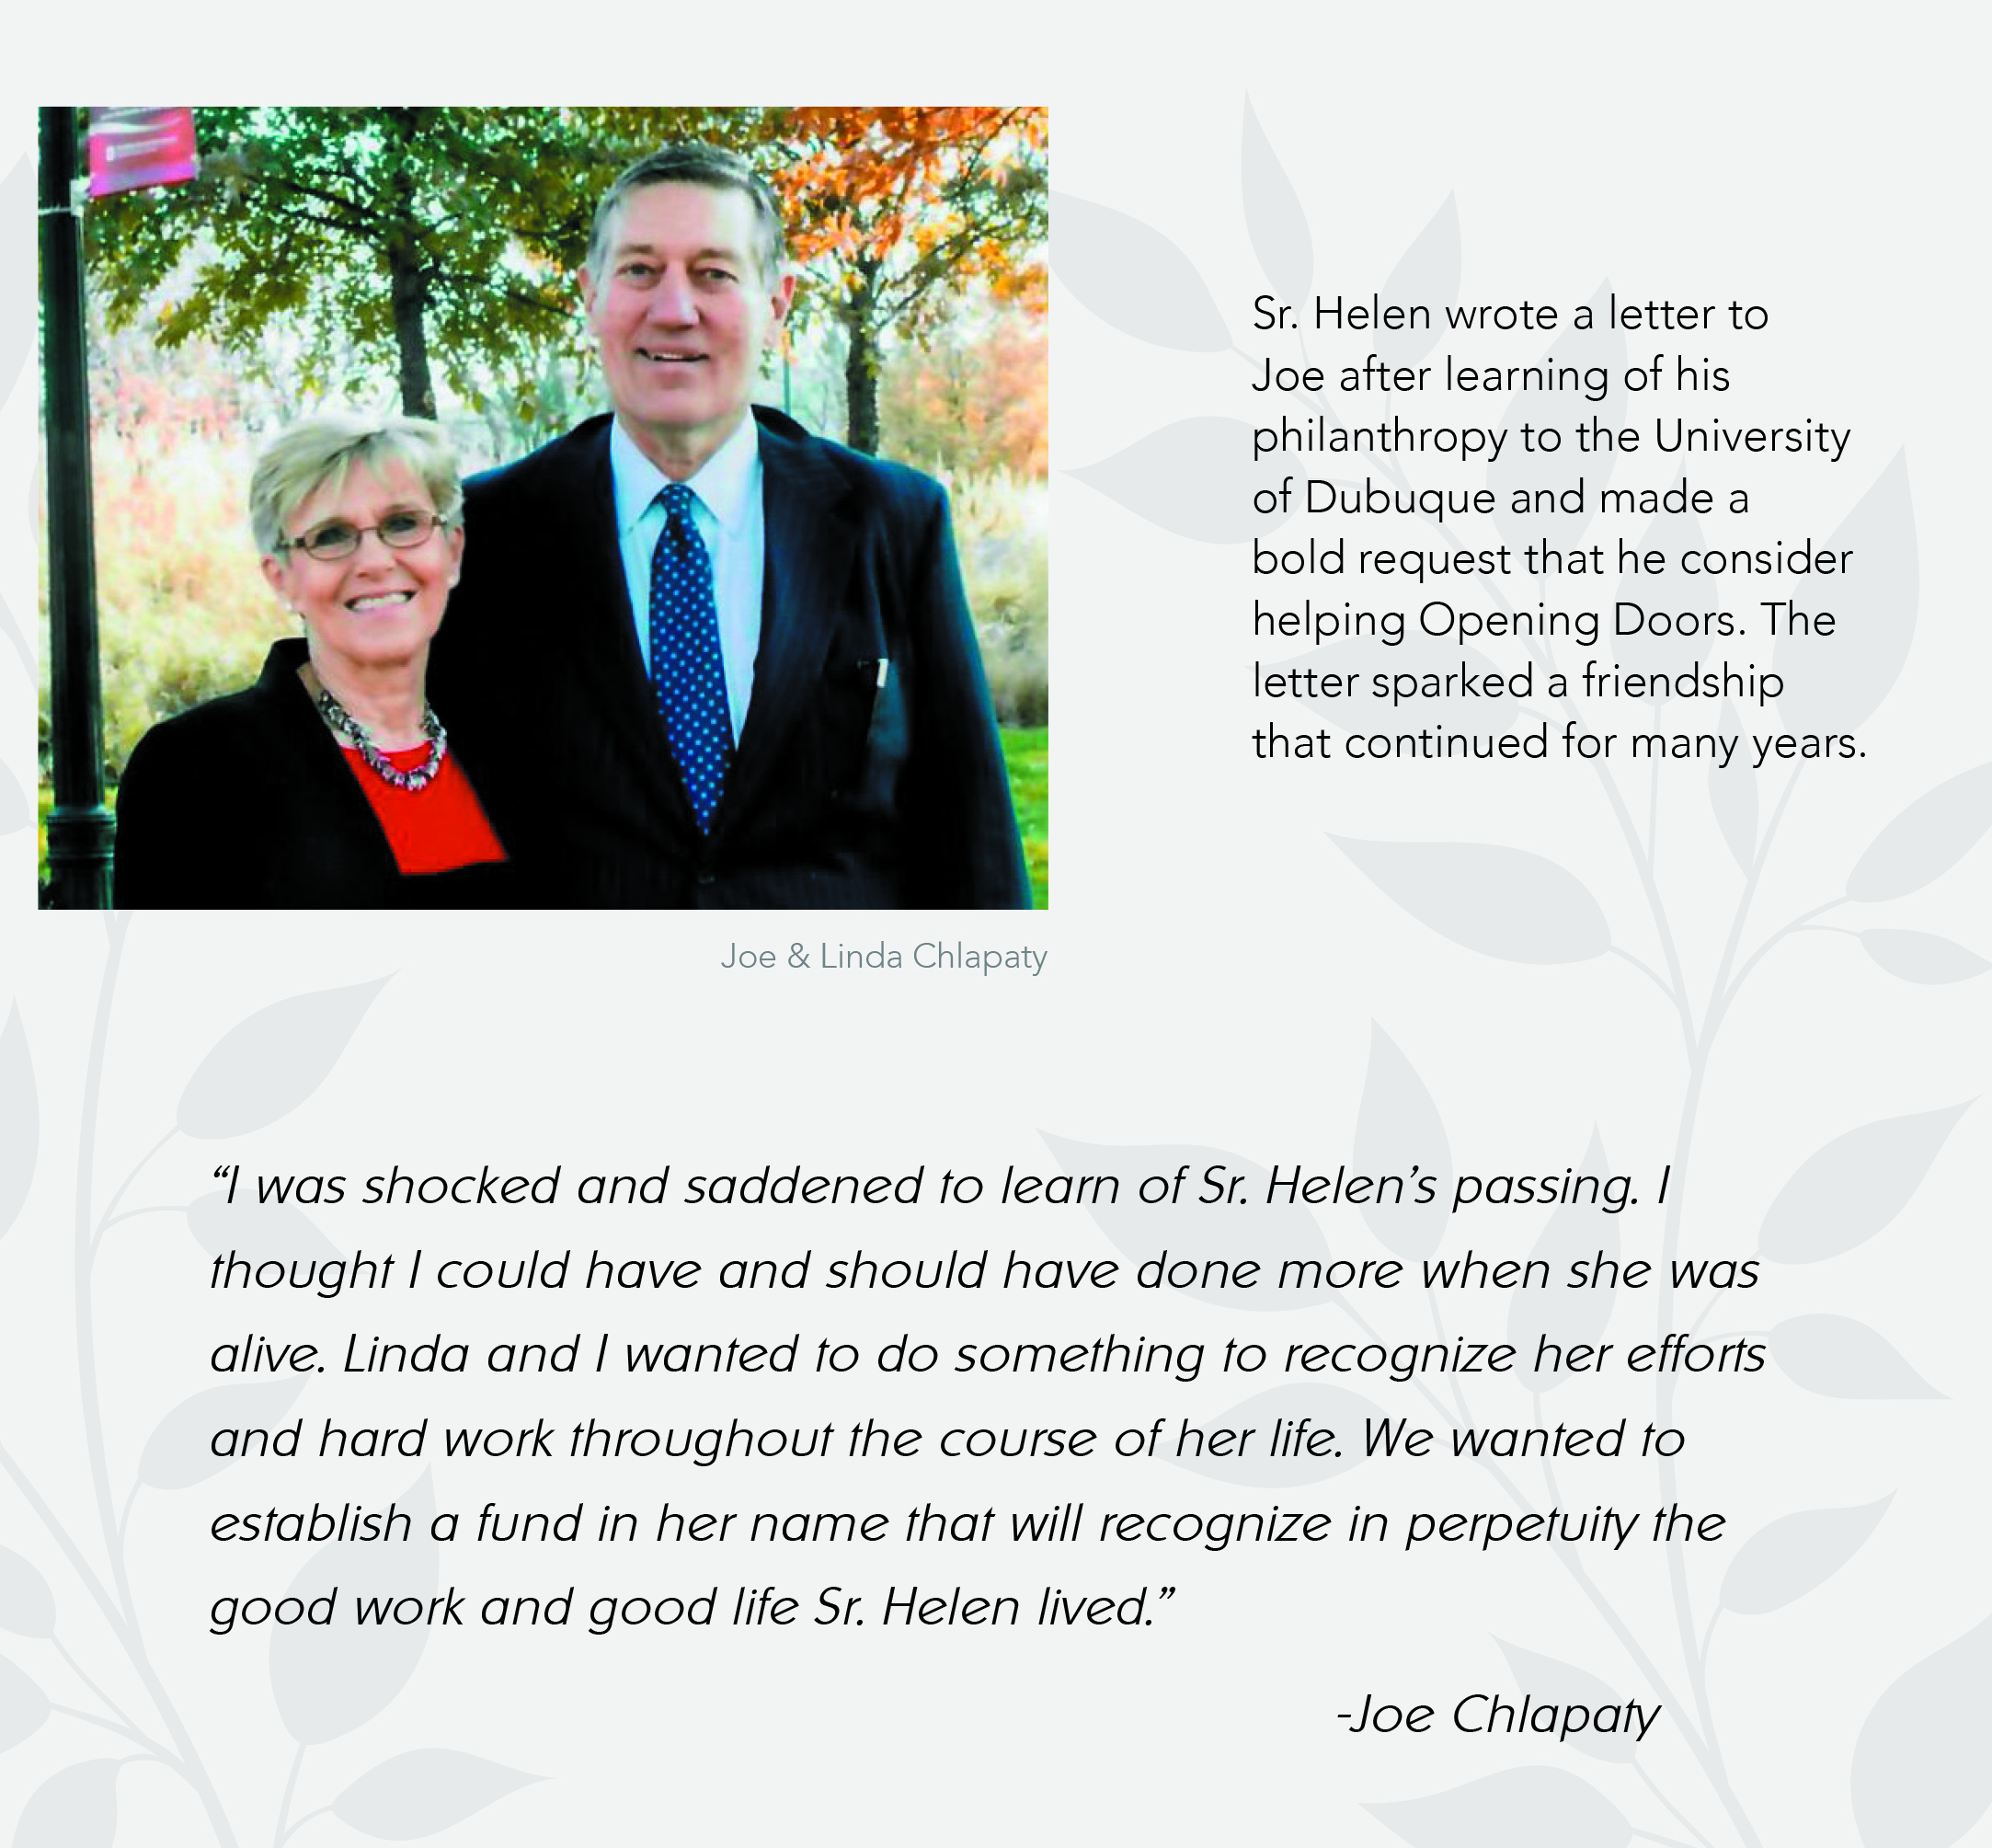 Joe and Linda Chlapaty photo and quote